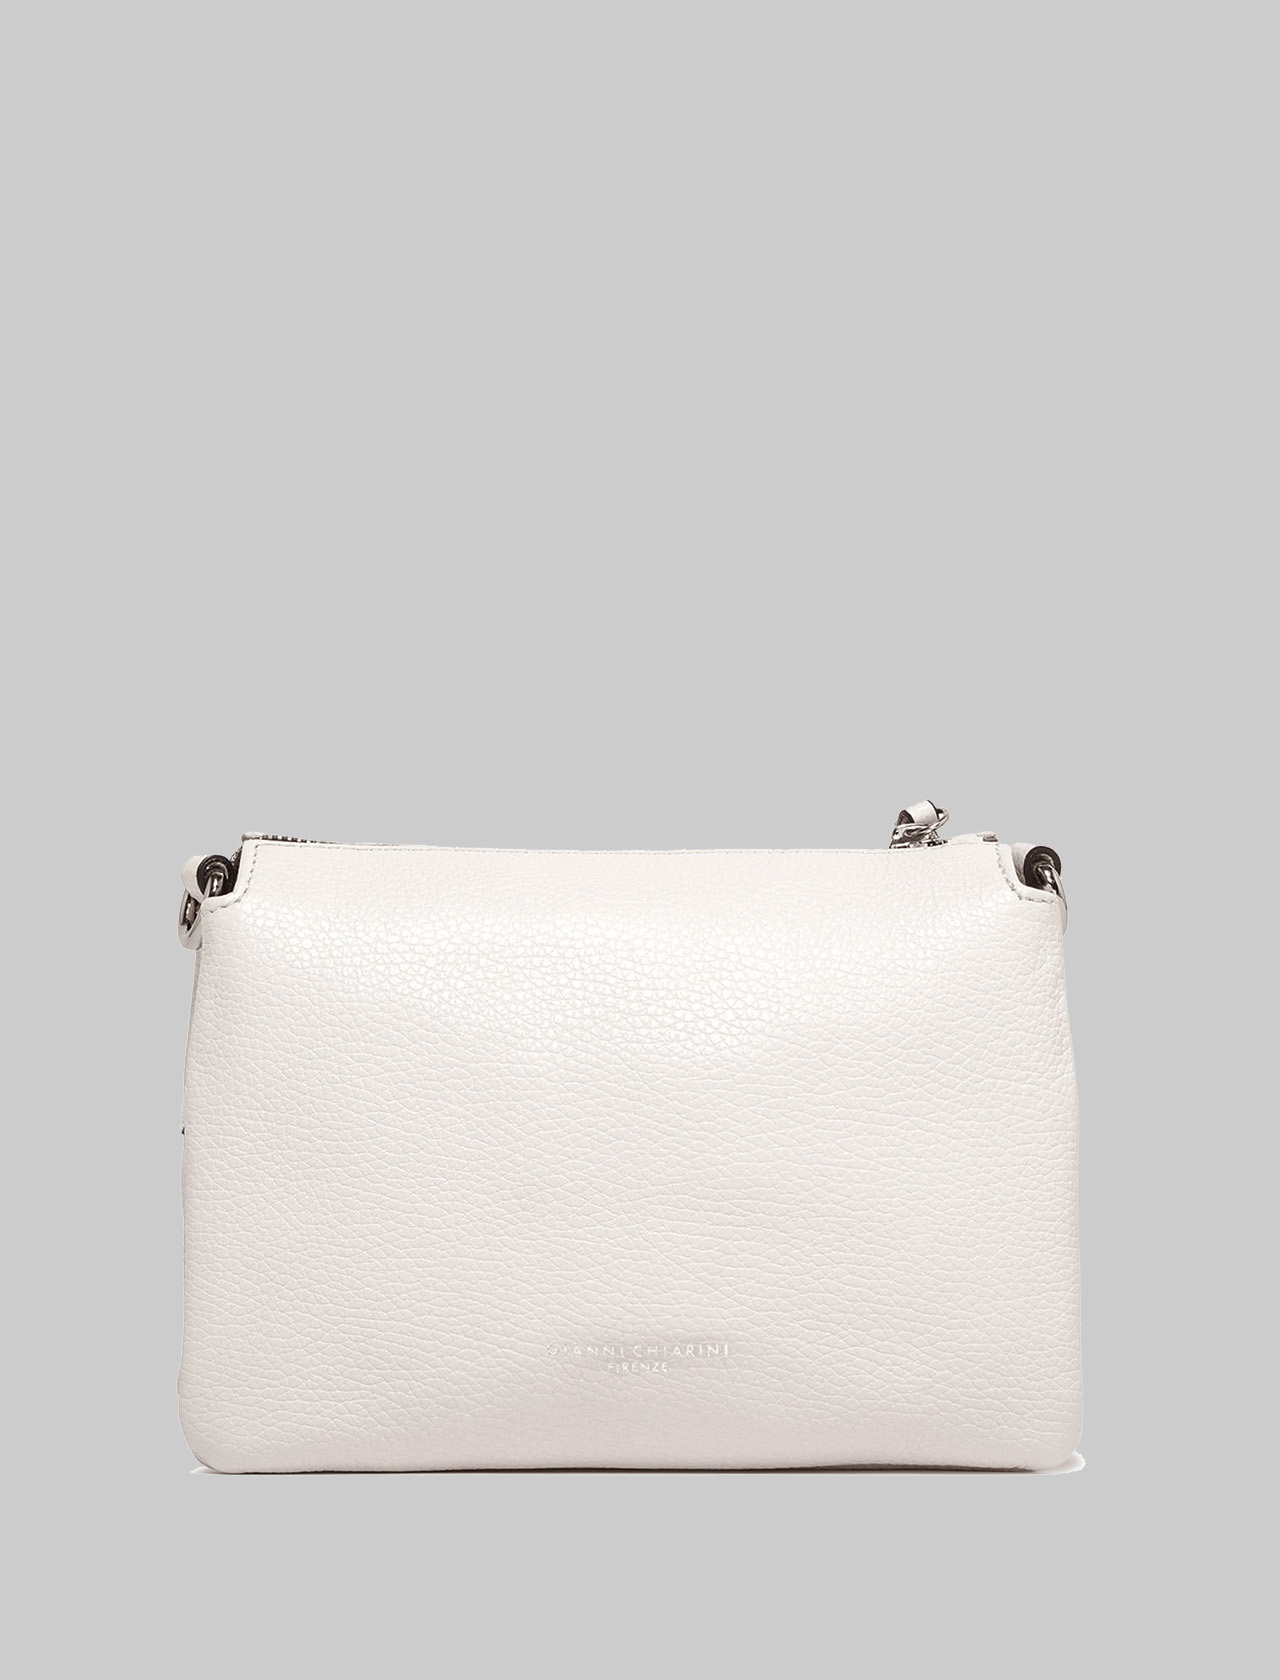 Small Three Shoulder Bag In Cream Leather With Removable And Adjustable Shoulder Strap Gianni Chiarini | Bags and backpacks | BS43623890